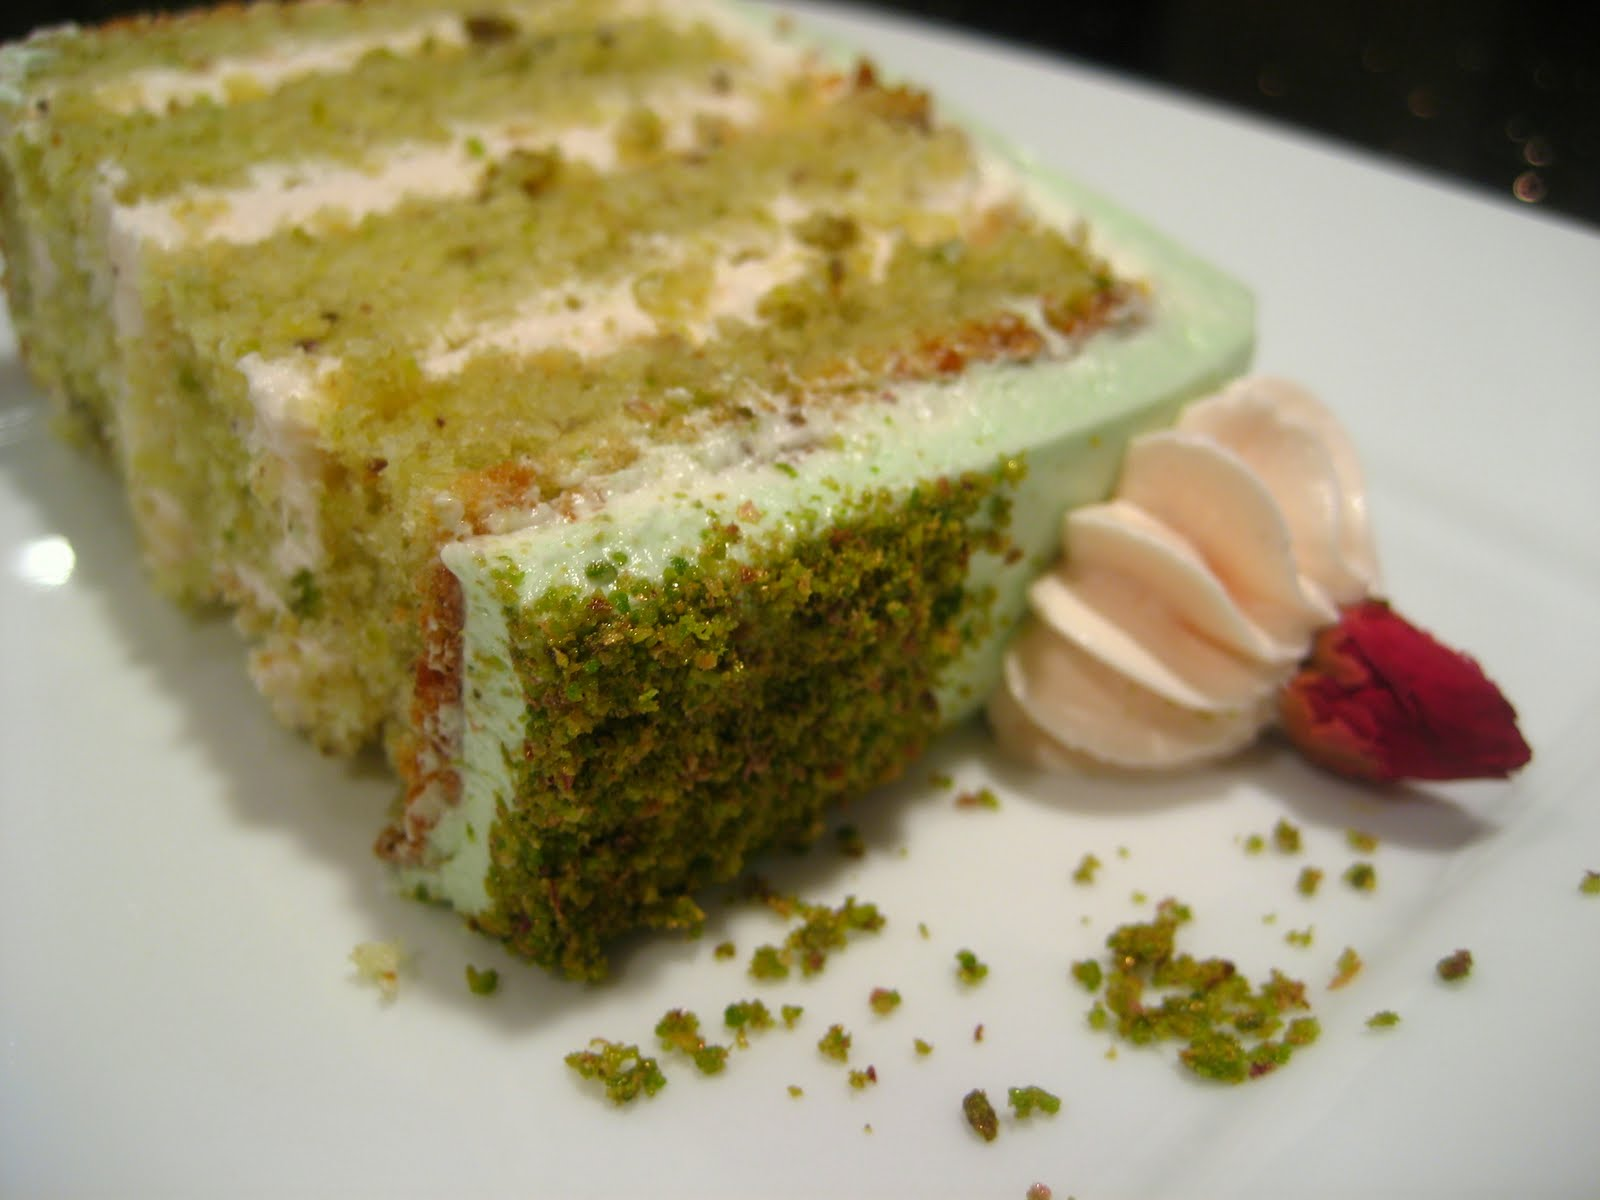 Best Frosting For Pistachio Cake